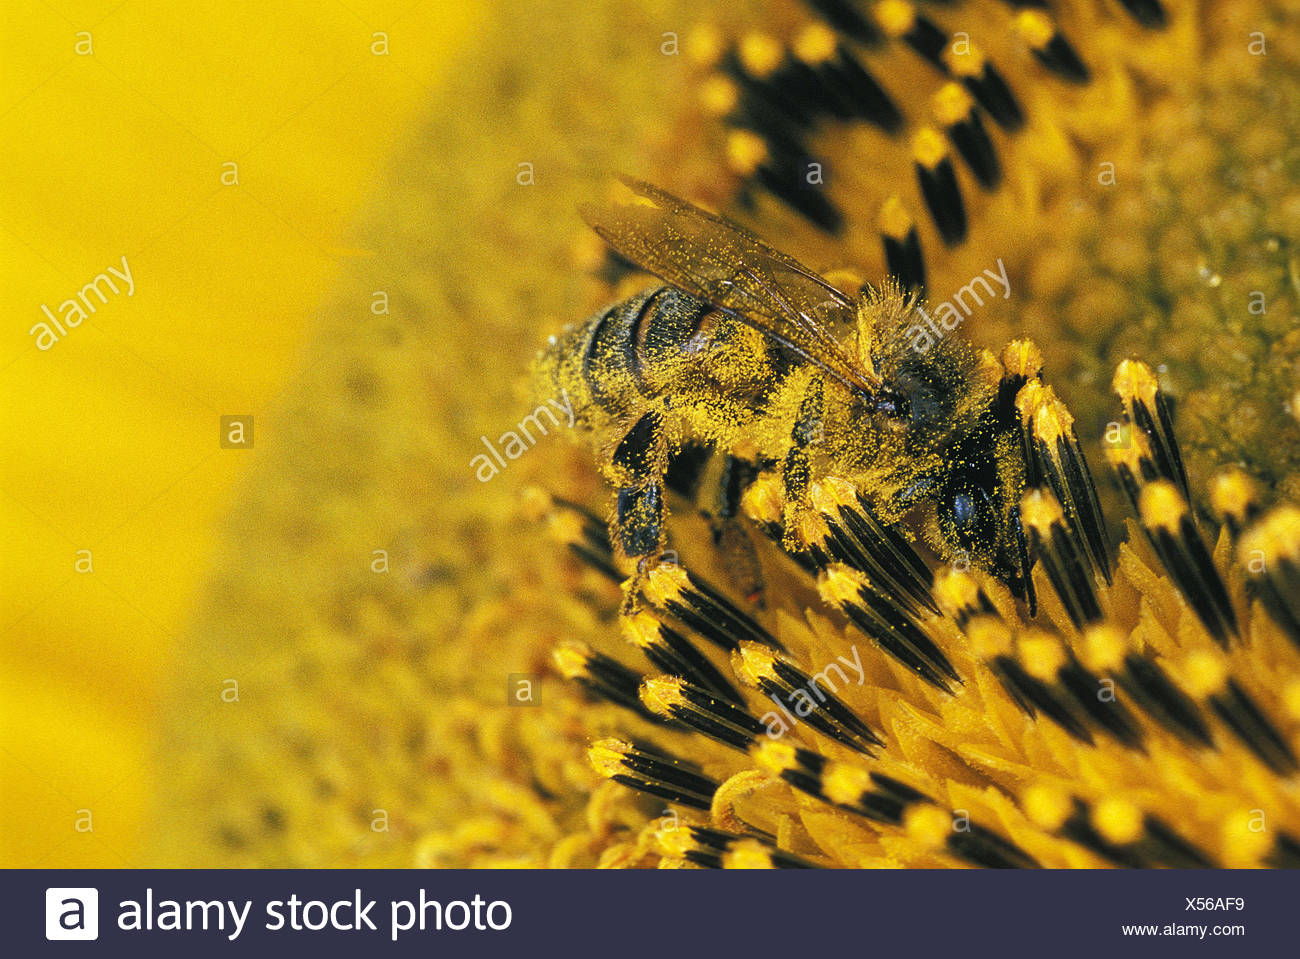 Honey Bee, apis mellifera, Adult on Sunflower, Pollen on its Body, close-up - Stock Image